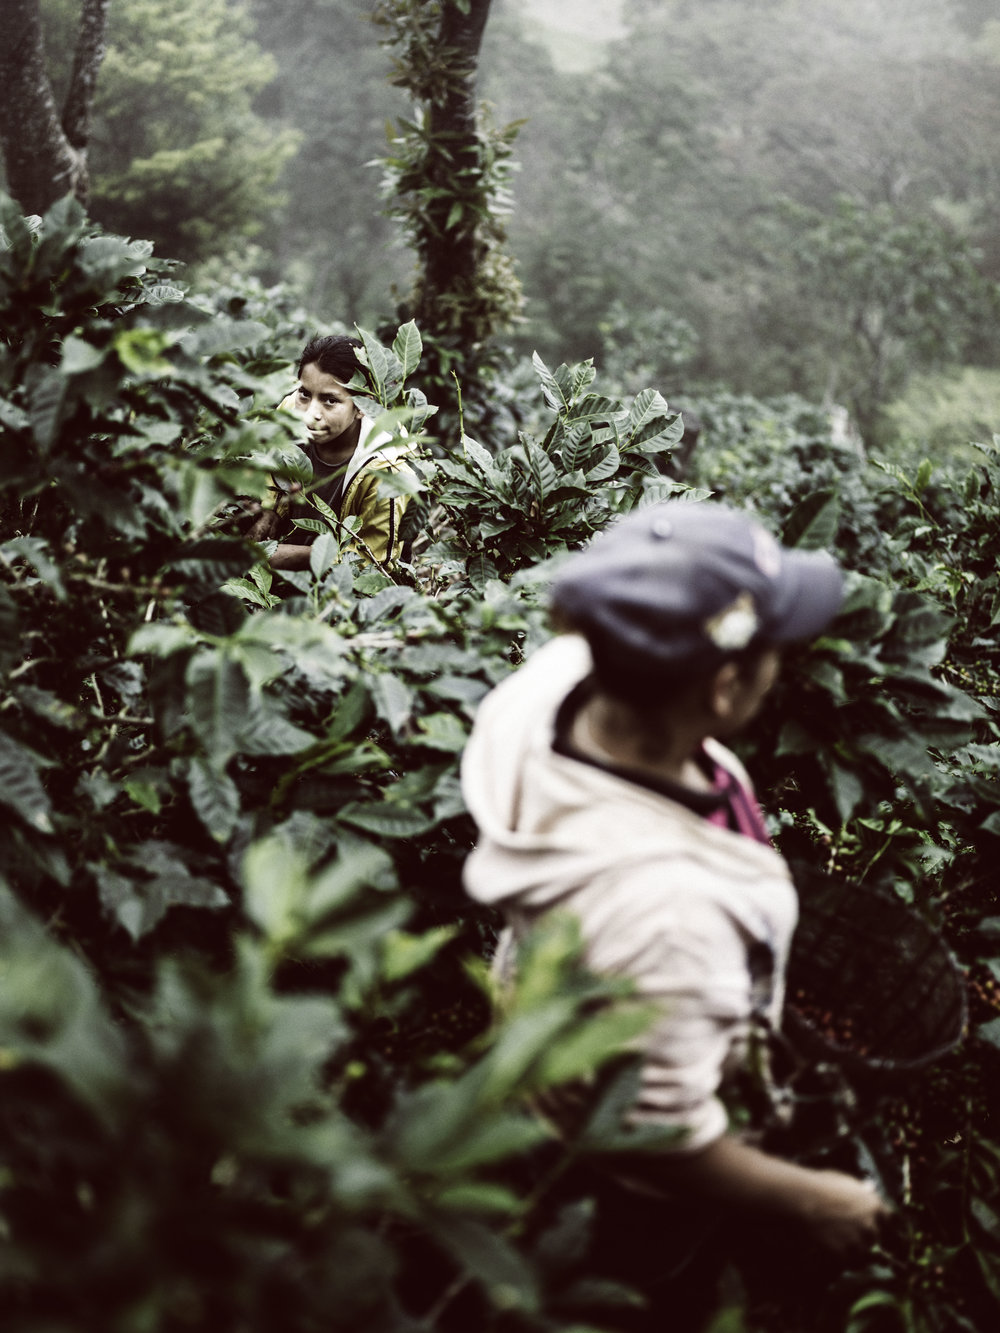 2014_03_07_tk_for_better_coffee_honduras_hasselblad-491_final.jpg